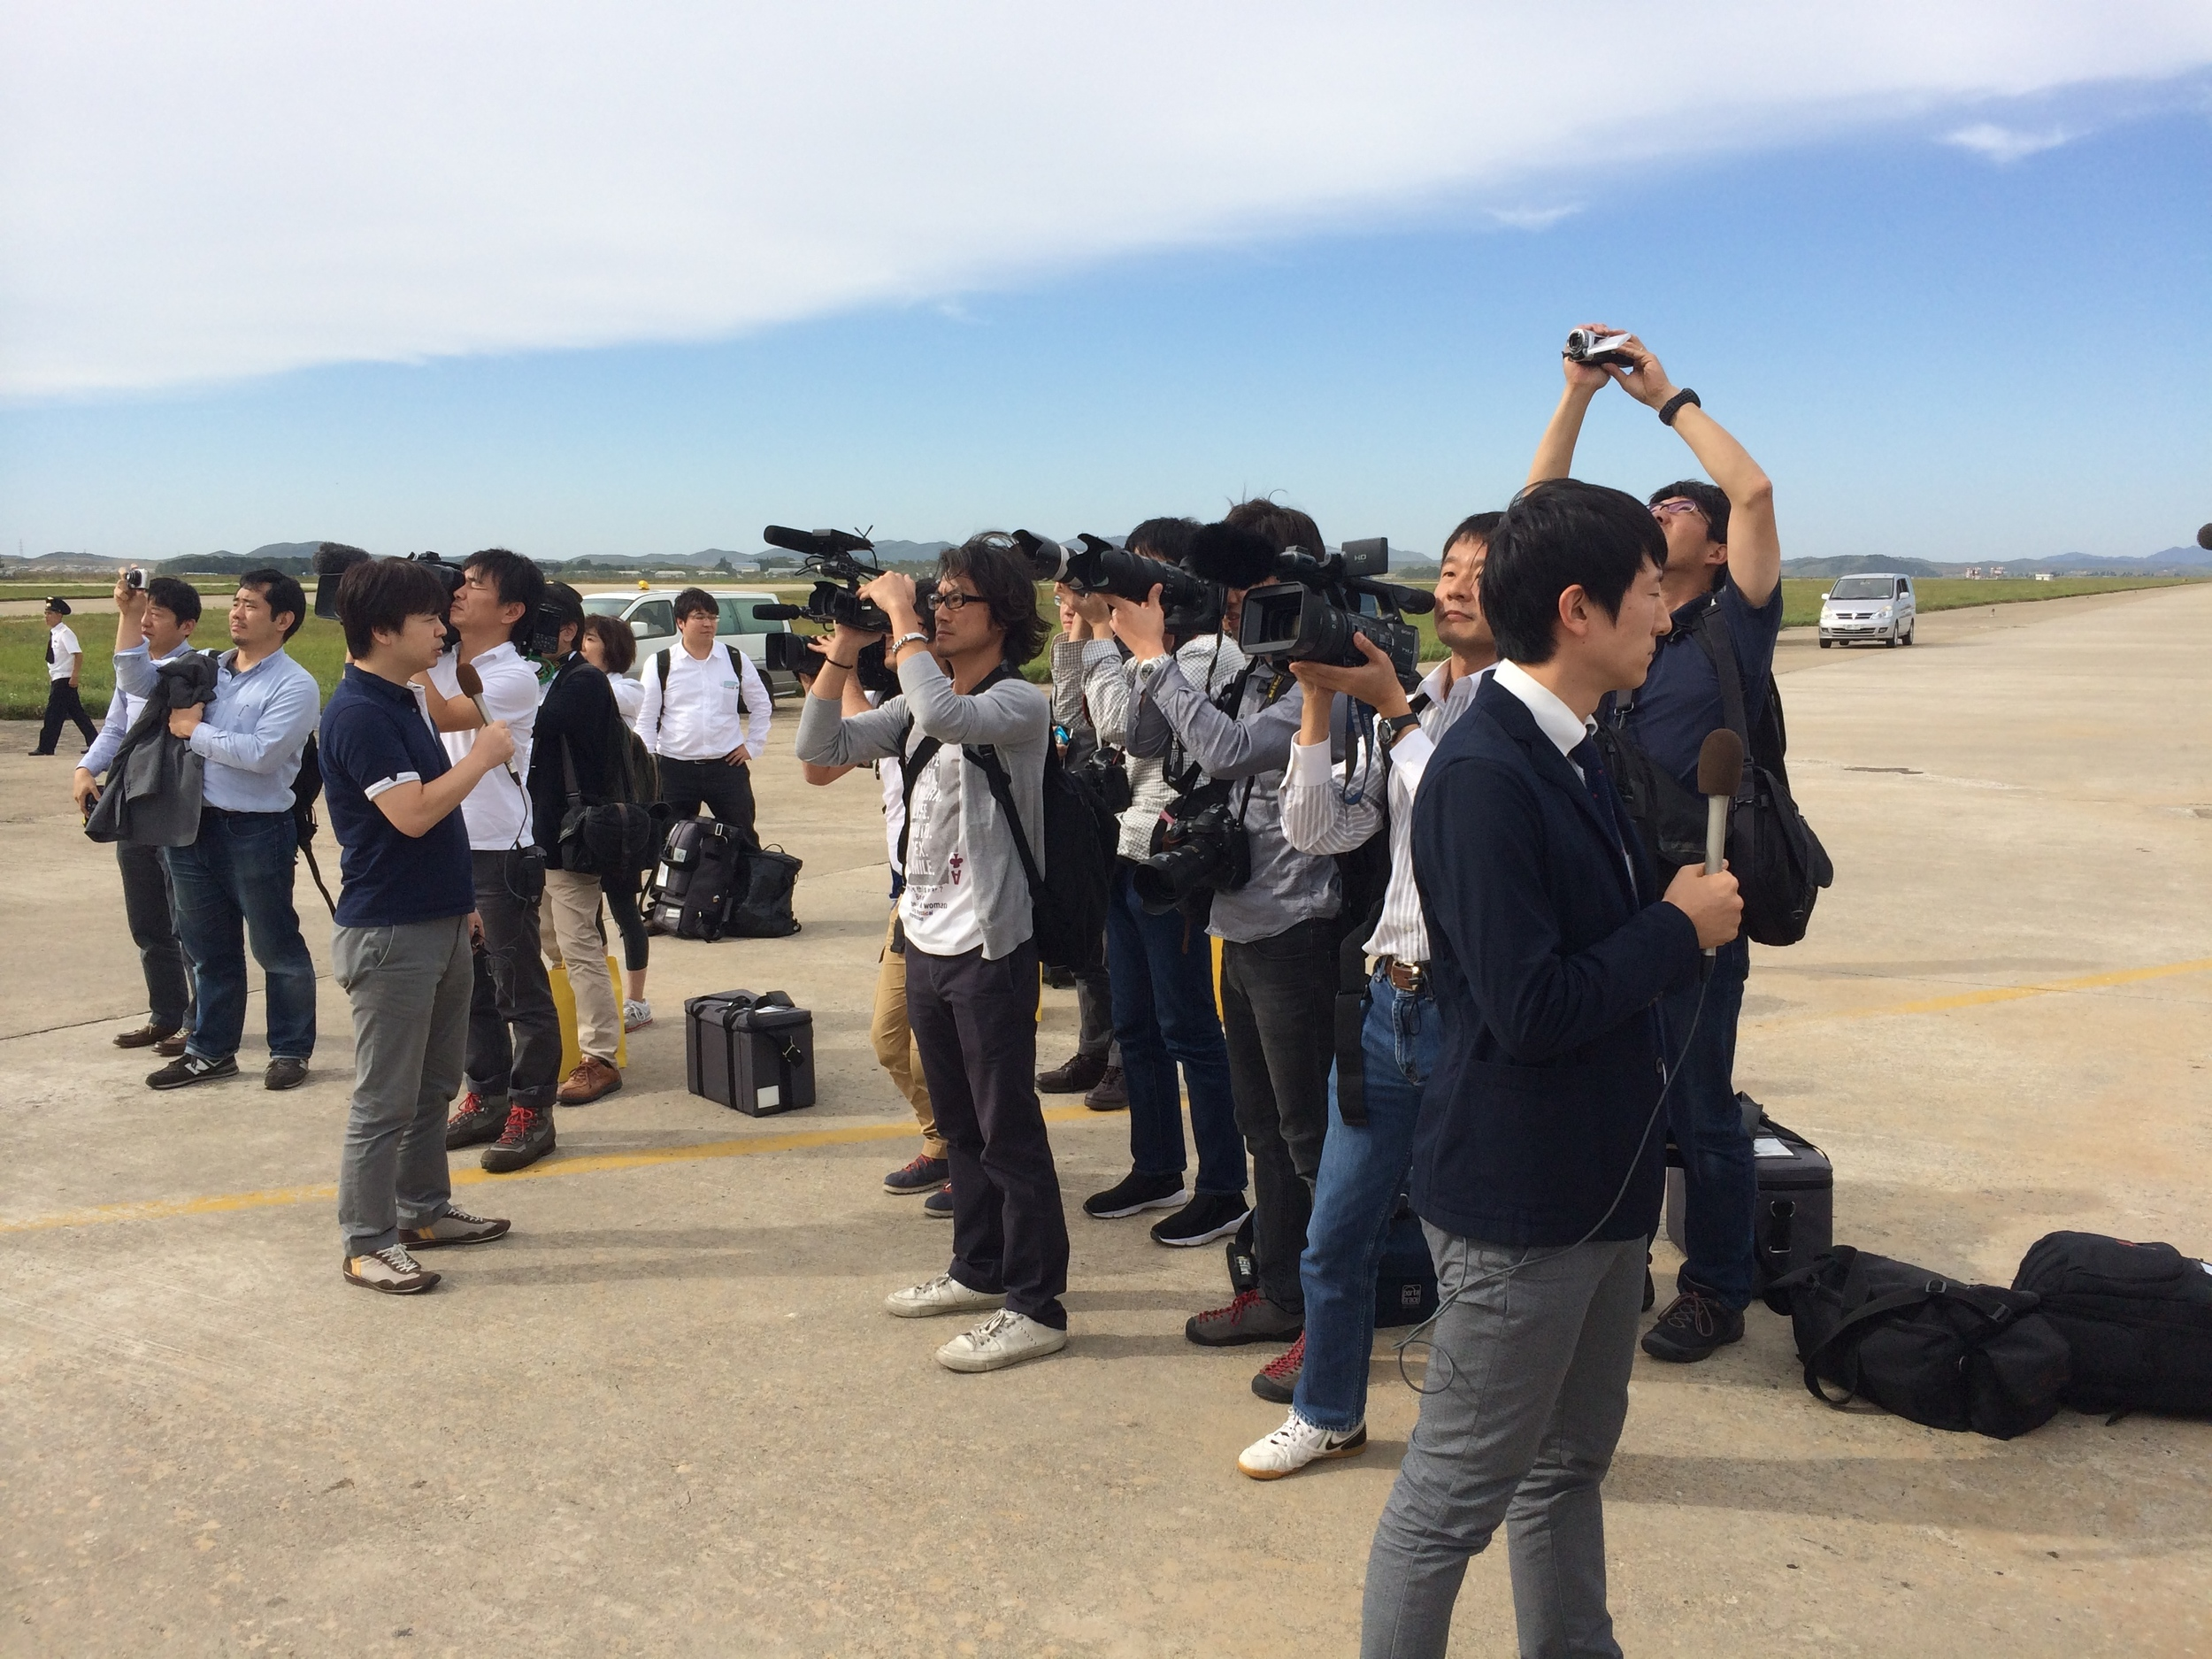 Japanese Press in Pyongyang last week, covering the visit of Japanese coming to visit the graves of family members in North Korea